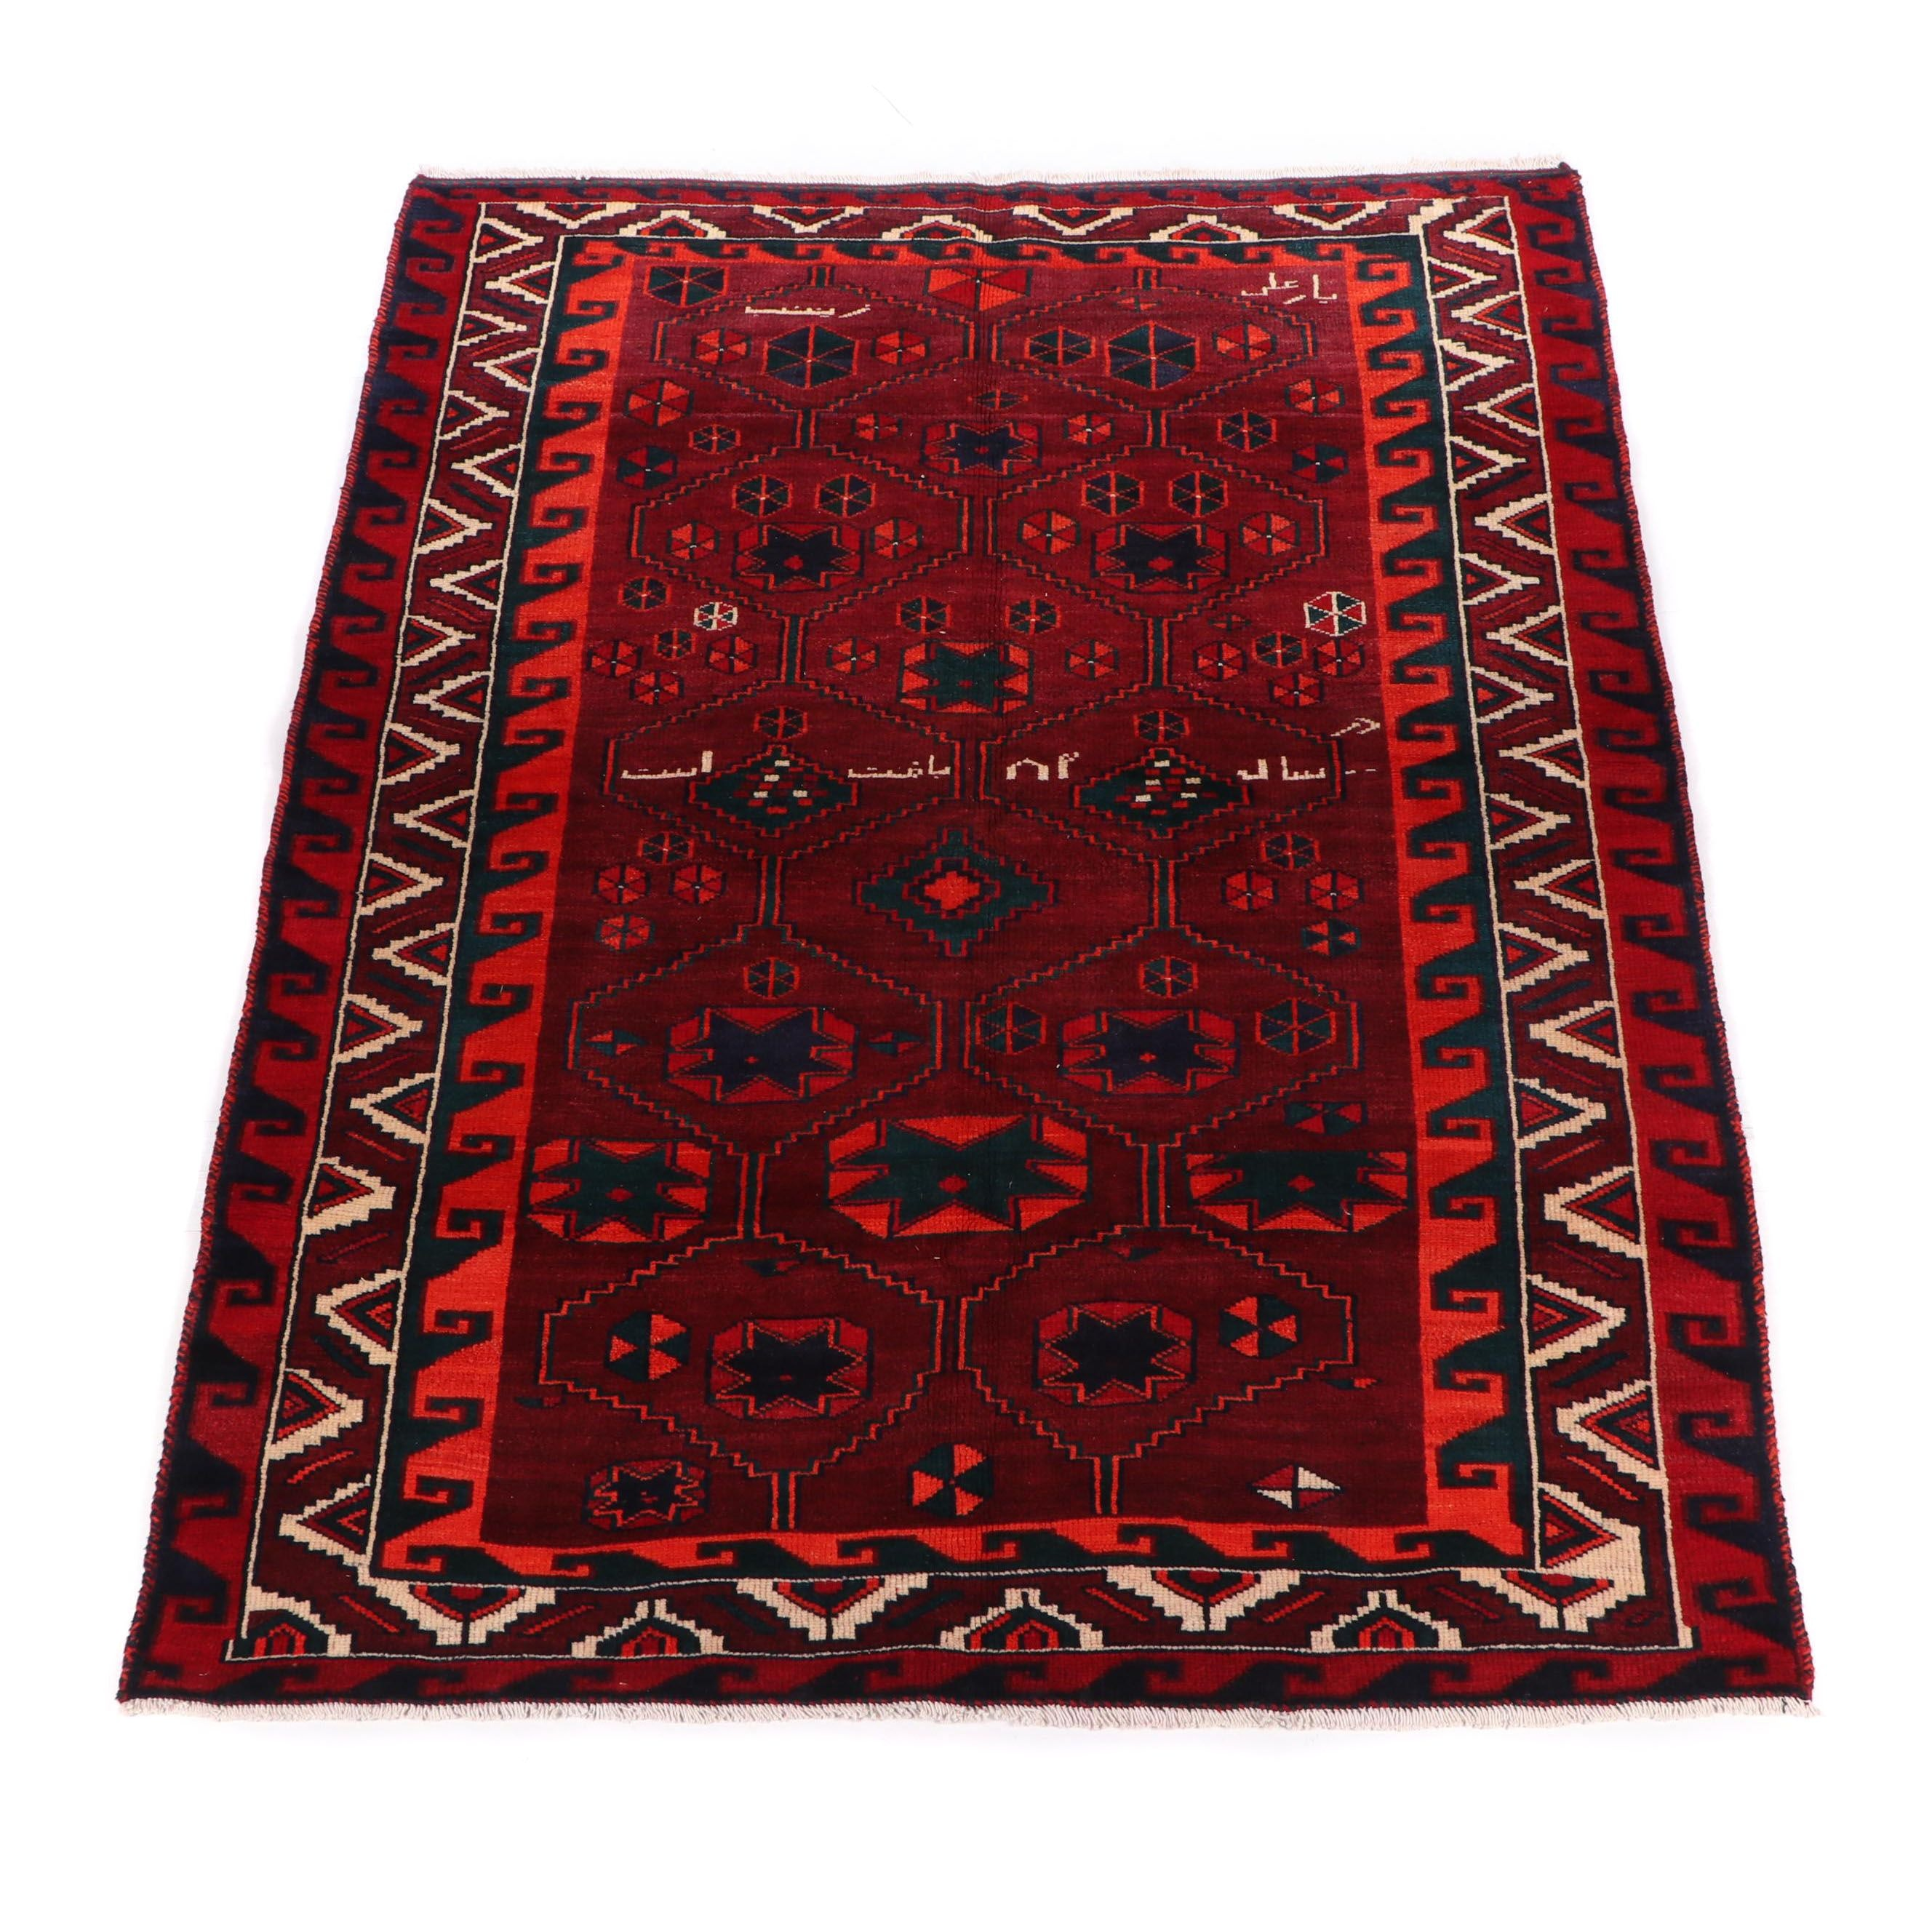 Hand-Knotted Inscribed Shiraz Wool Rug